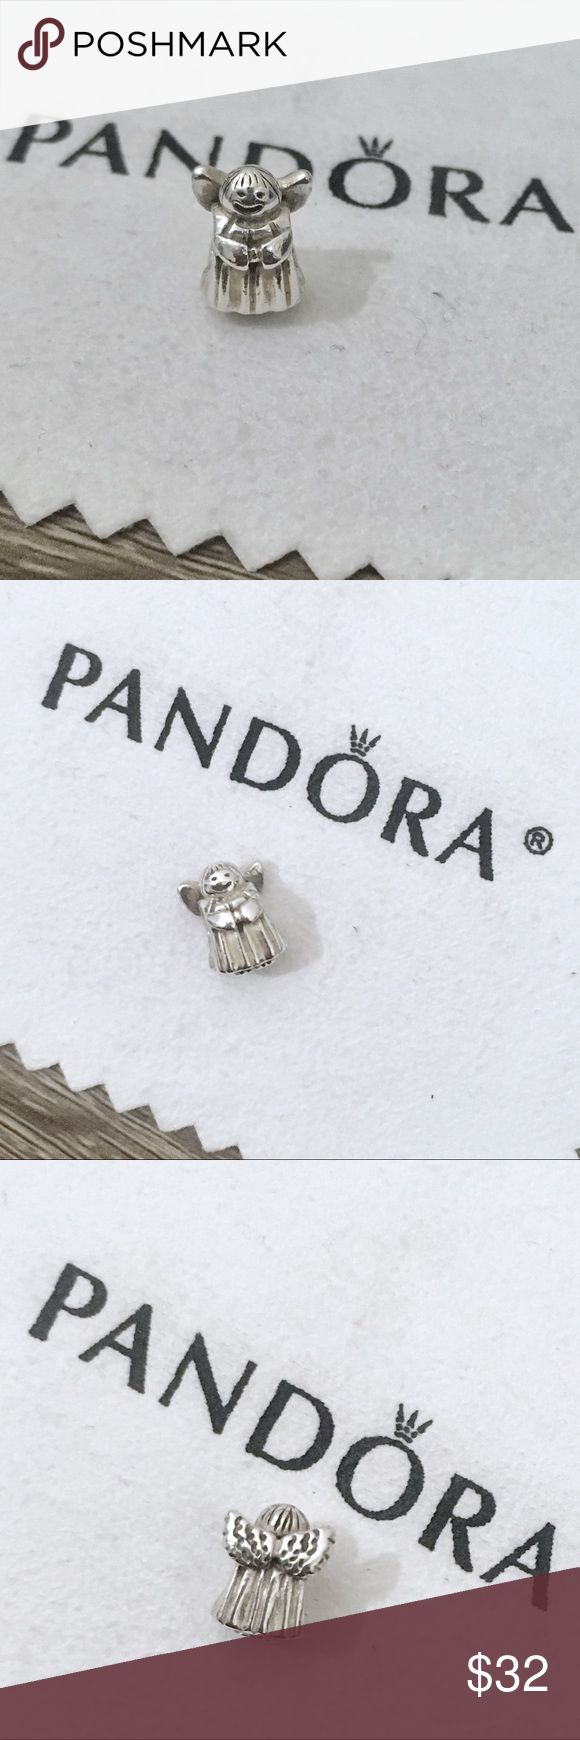 Pandora angel charm sterling silver angel of hope Authentic pandora charm. Pandora angel charm with textured angel wings. Sterling silver charm, stamped with 925 Ale on the bottom. *Price is for the charm only, does not include cloth or bracelet.* • Bundle to save! • No trades • No holds #Pandora charm, Pandora angel charm, angel Pandora charm, Pandora angel wings charm, Pandora Christmas angel, Christmas Pandora charm, Pandora Christmas charm, Pandora angel of hope Pandora Jewelry…